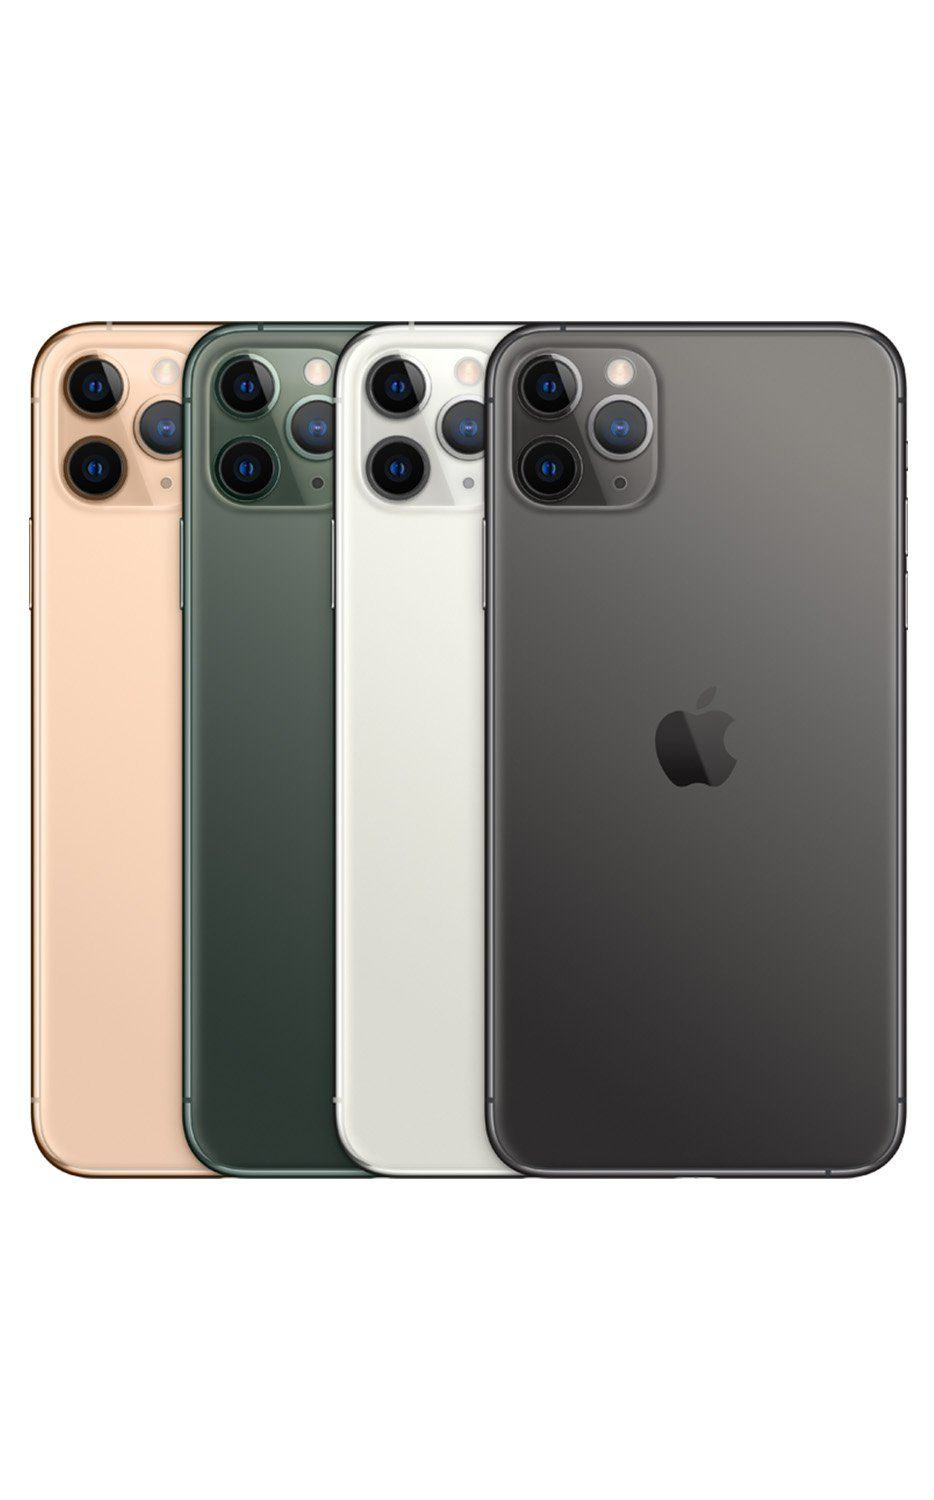 Iphone 11 Pro Max In 2020 Iphone Free Iphone Iphone 11